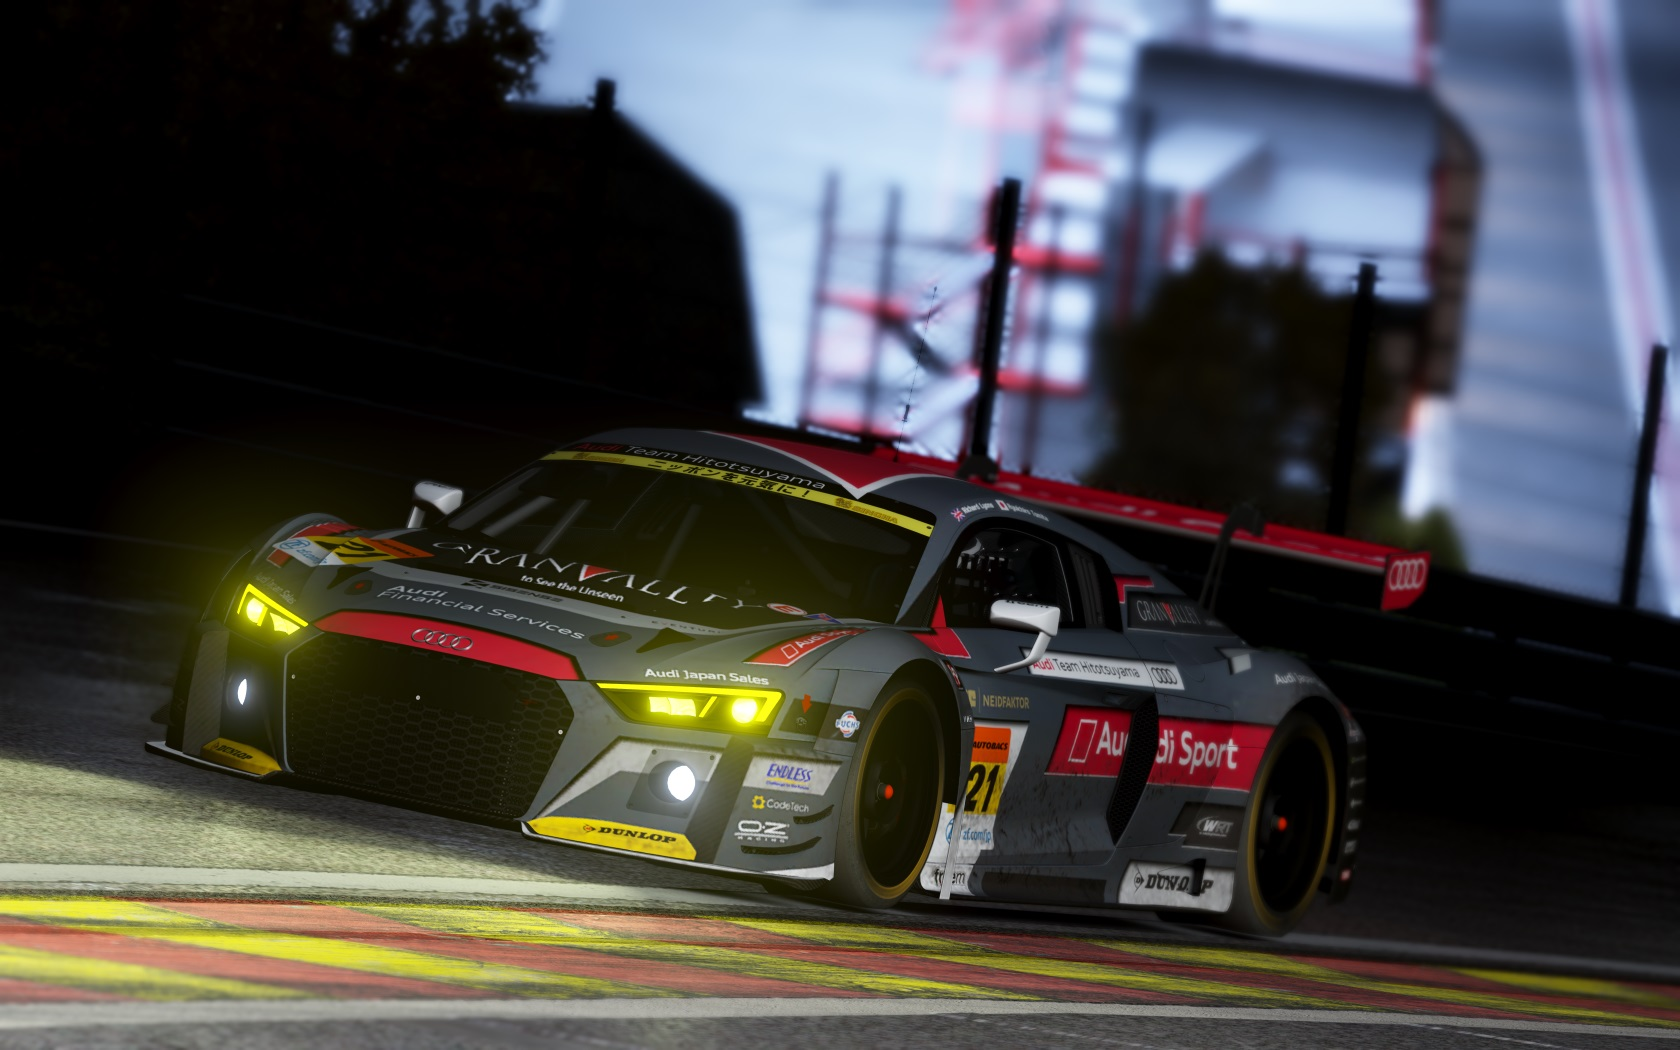 Screenshot_ks_audi_r8_lms_2016_spa_24-11-118-17-41-7.jpg